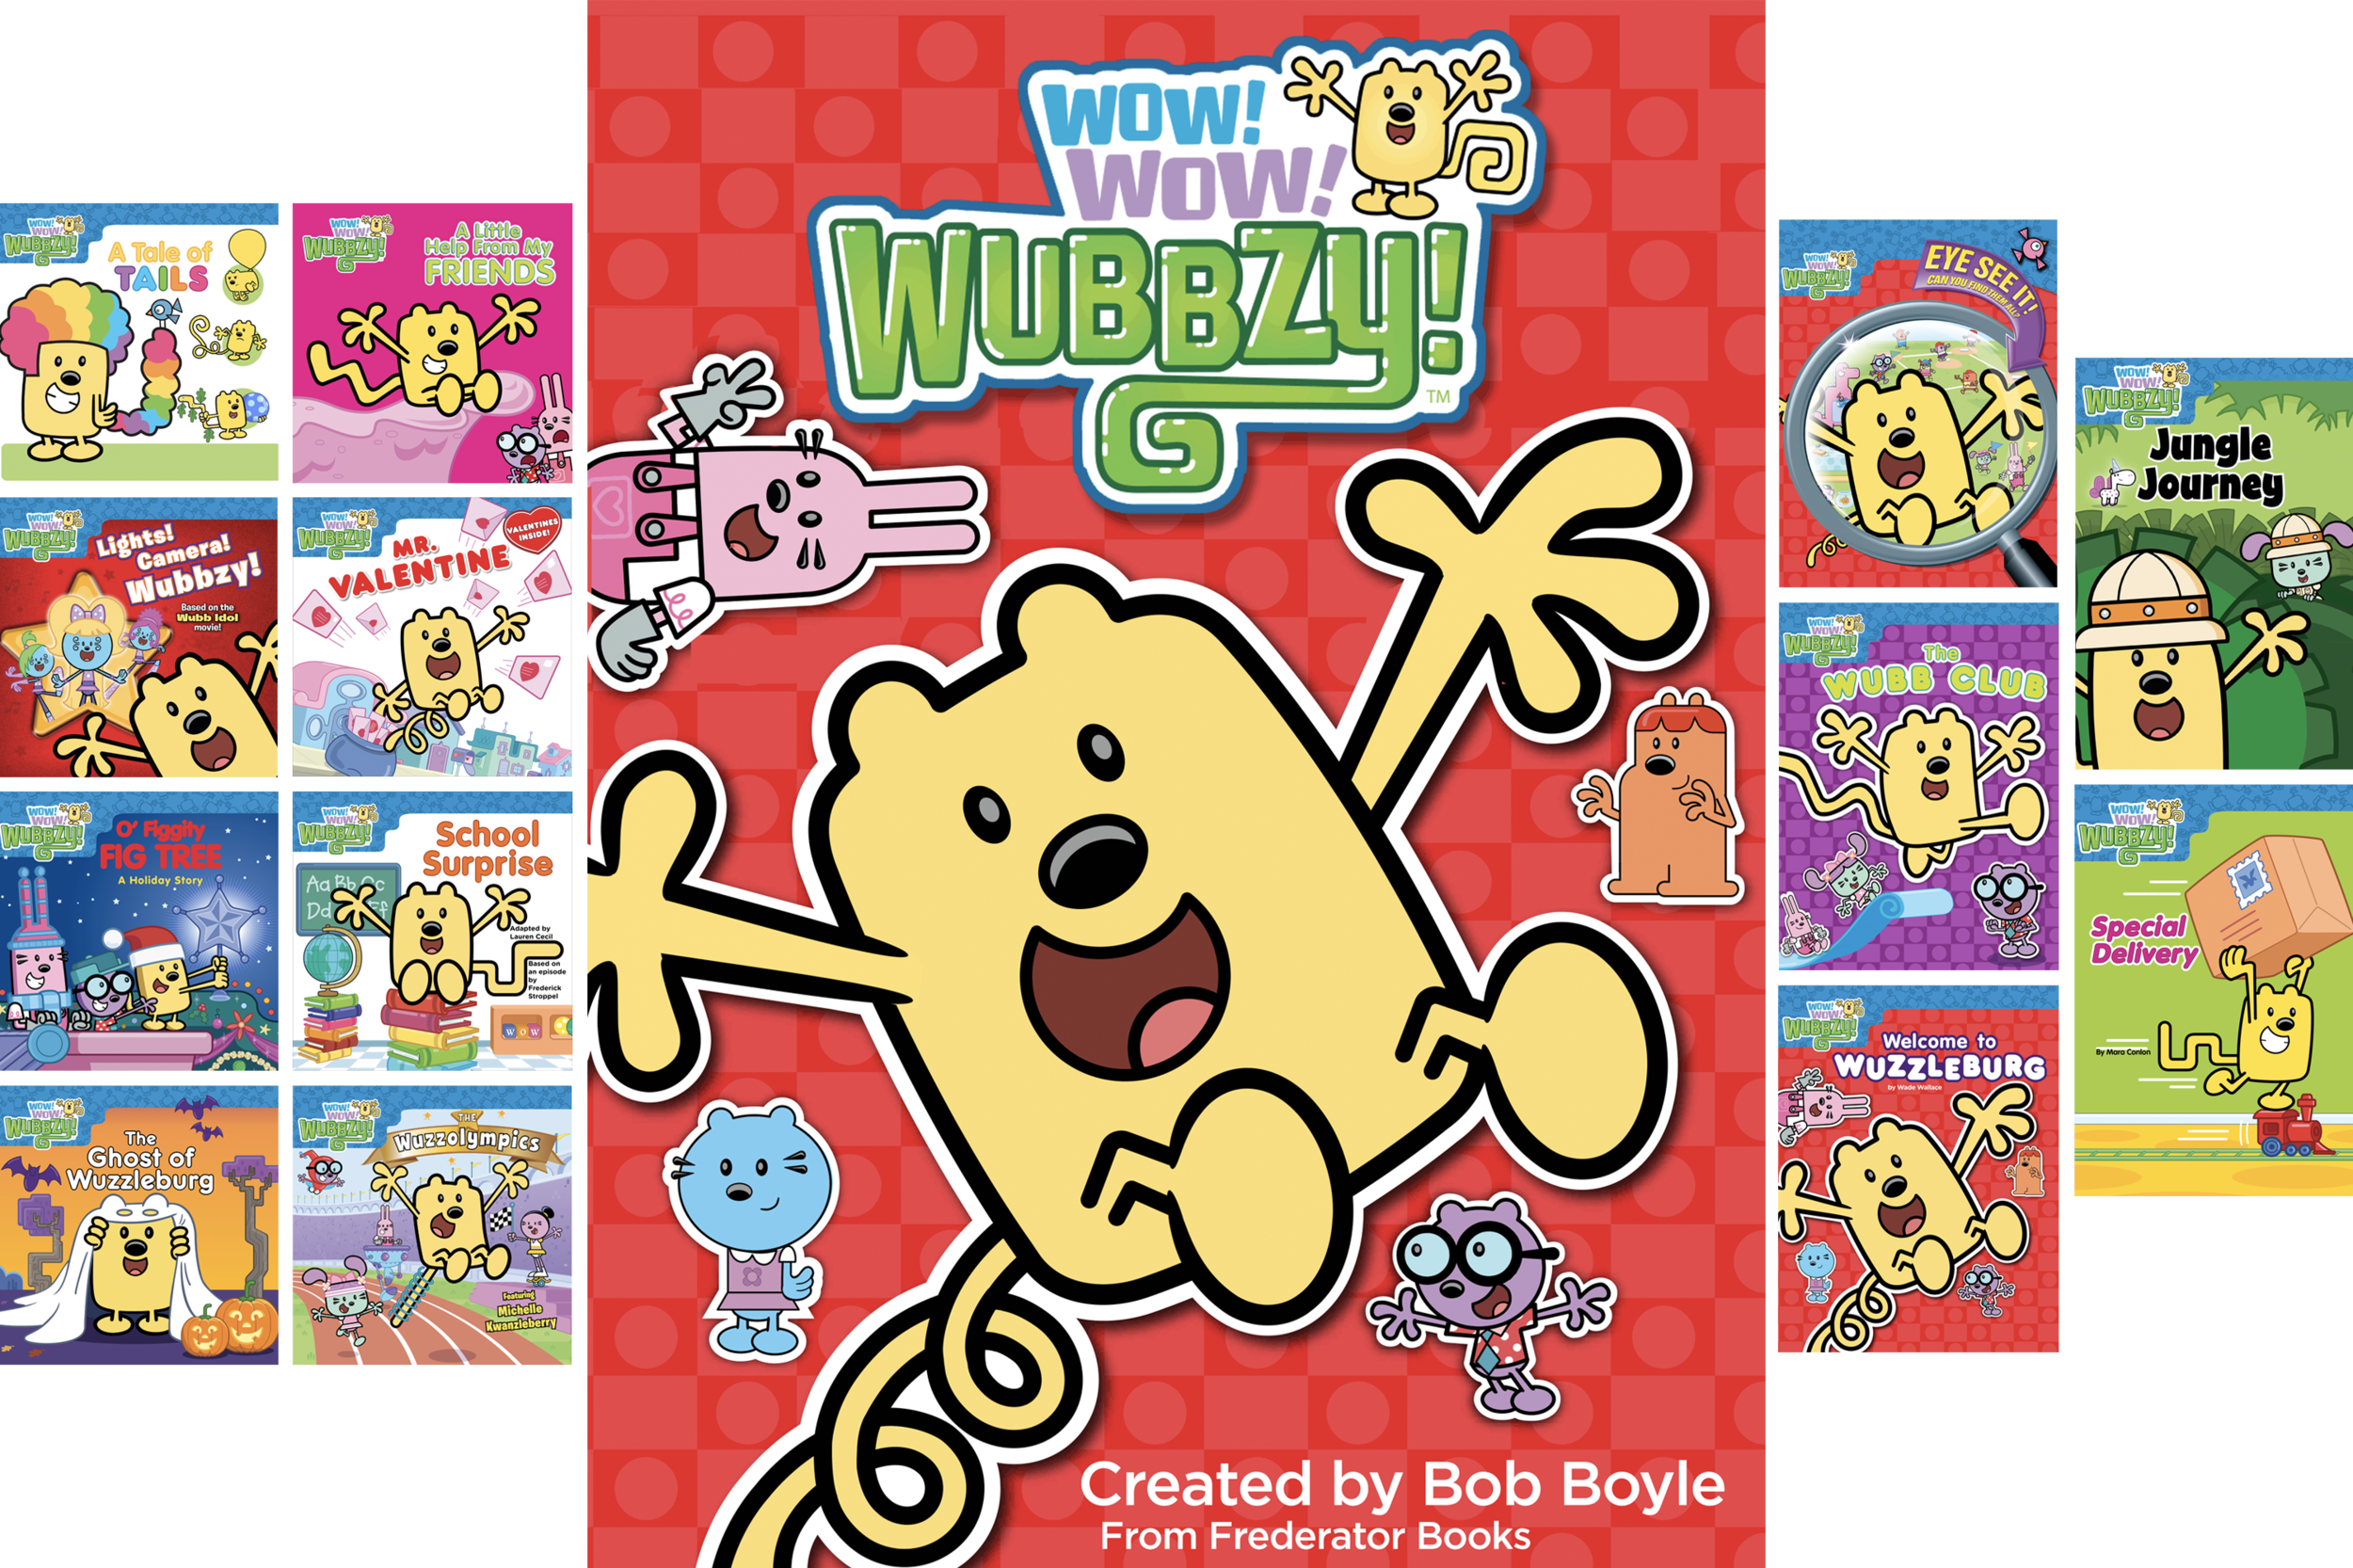 Whether he's riding on his tooter-scooter, baking a chocolate doodly-berry cake, or playing a game of kickity-kickball, Wubbzy just loves to play and have fun! Join him and his friends for some fun, funny adventures.  The  Wow! Wow! Wubbzy!  books are based on  the hit cartoon series  created by author and animator Bob Boyle.